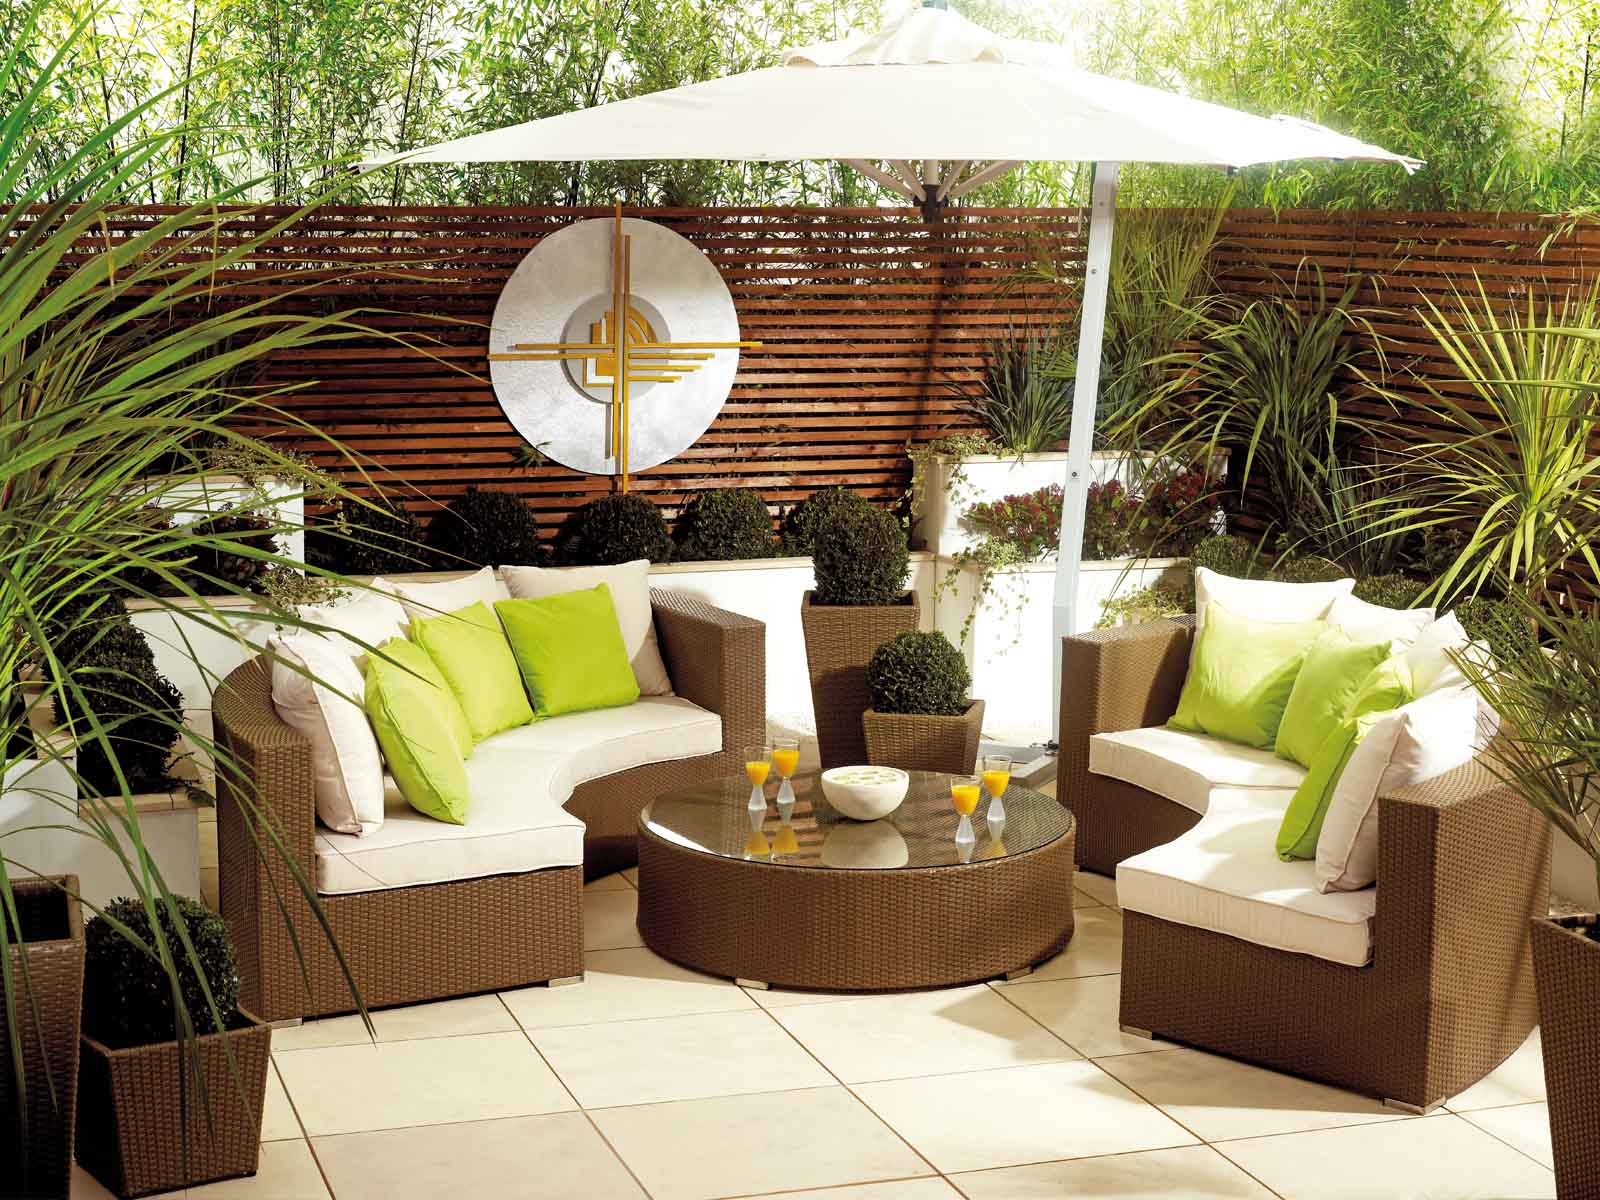 Apartment Balcony Furniture: Small balcony furniture along with ...